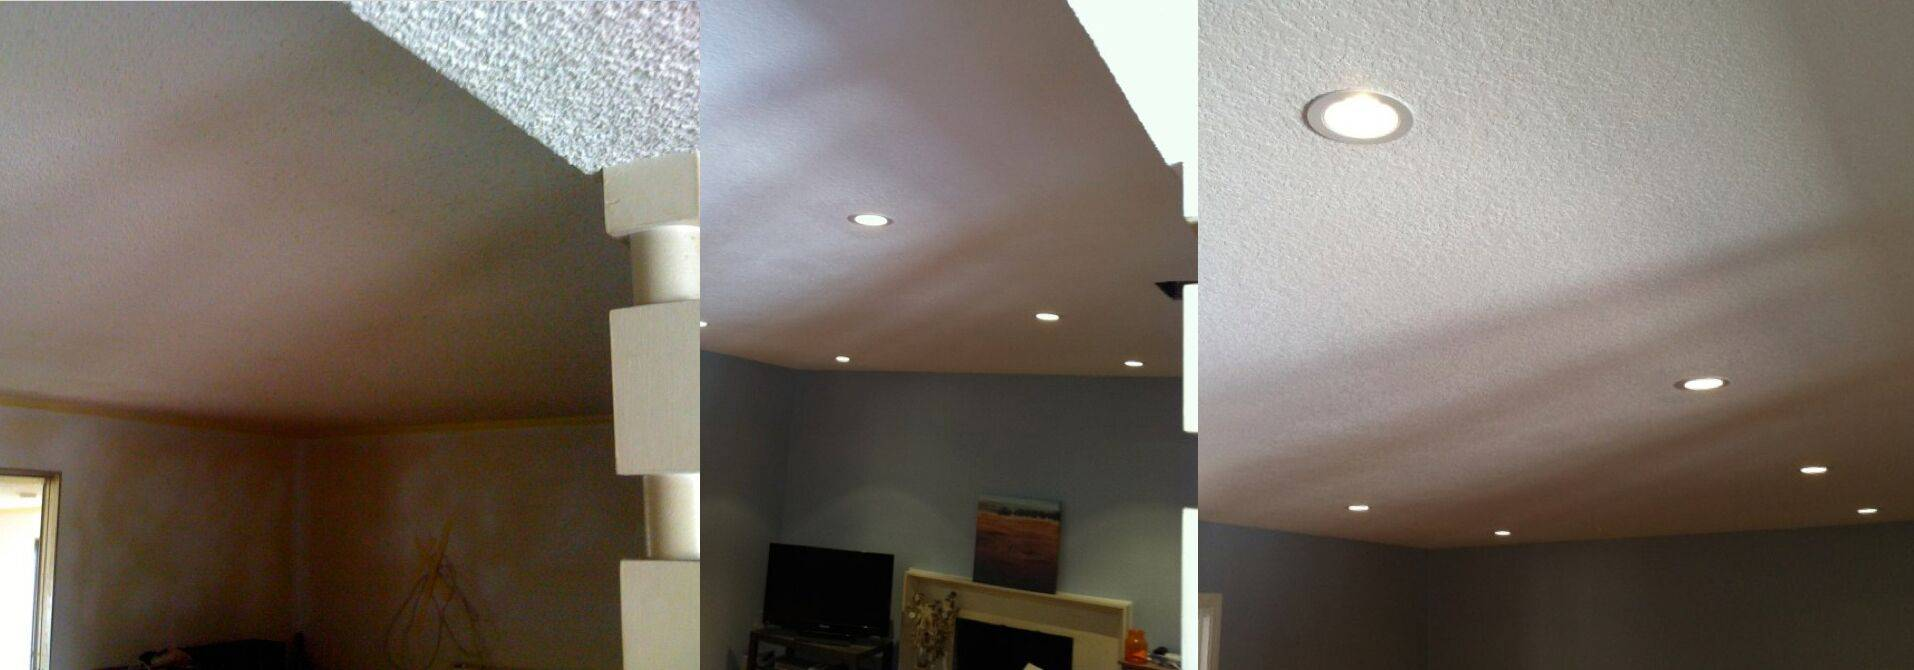 can you install recessed lighting in popcorn ceiling